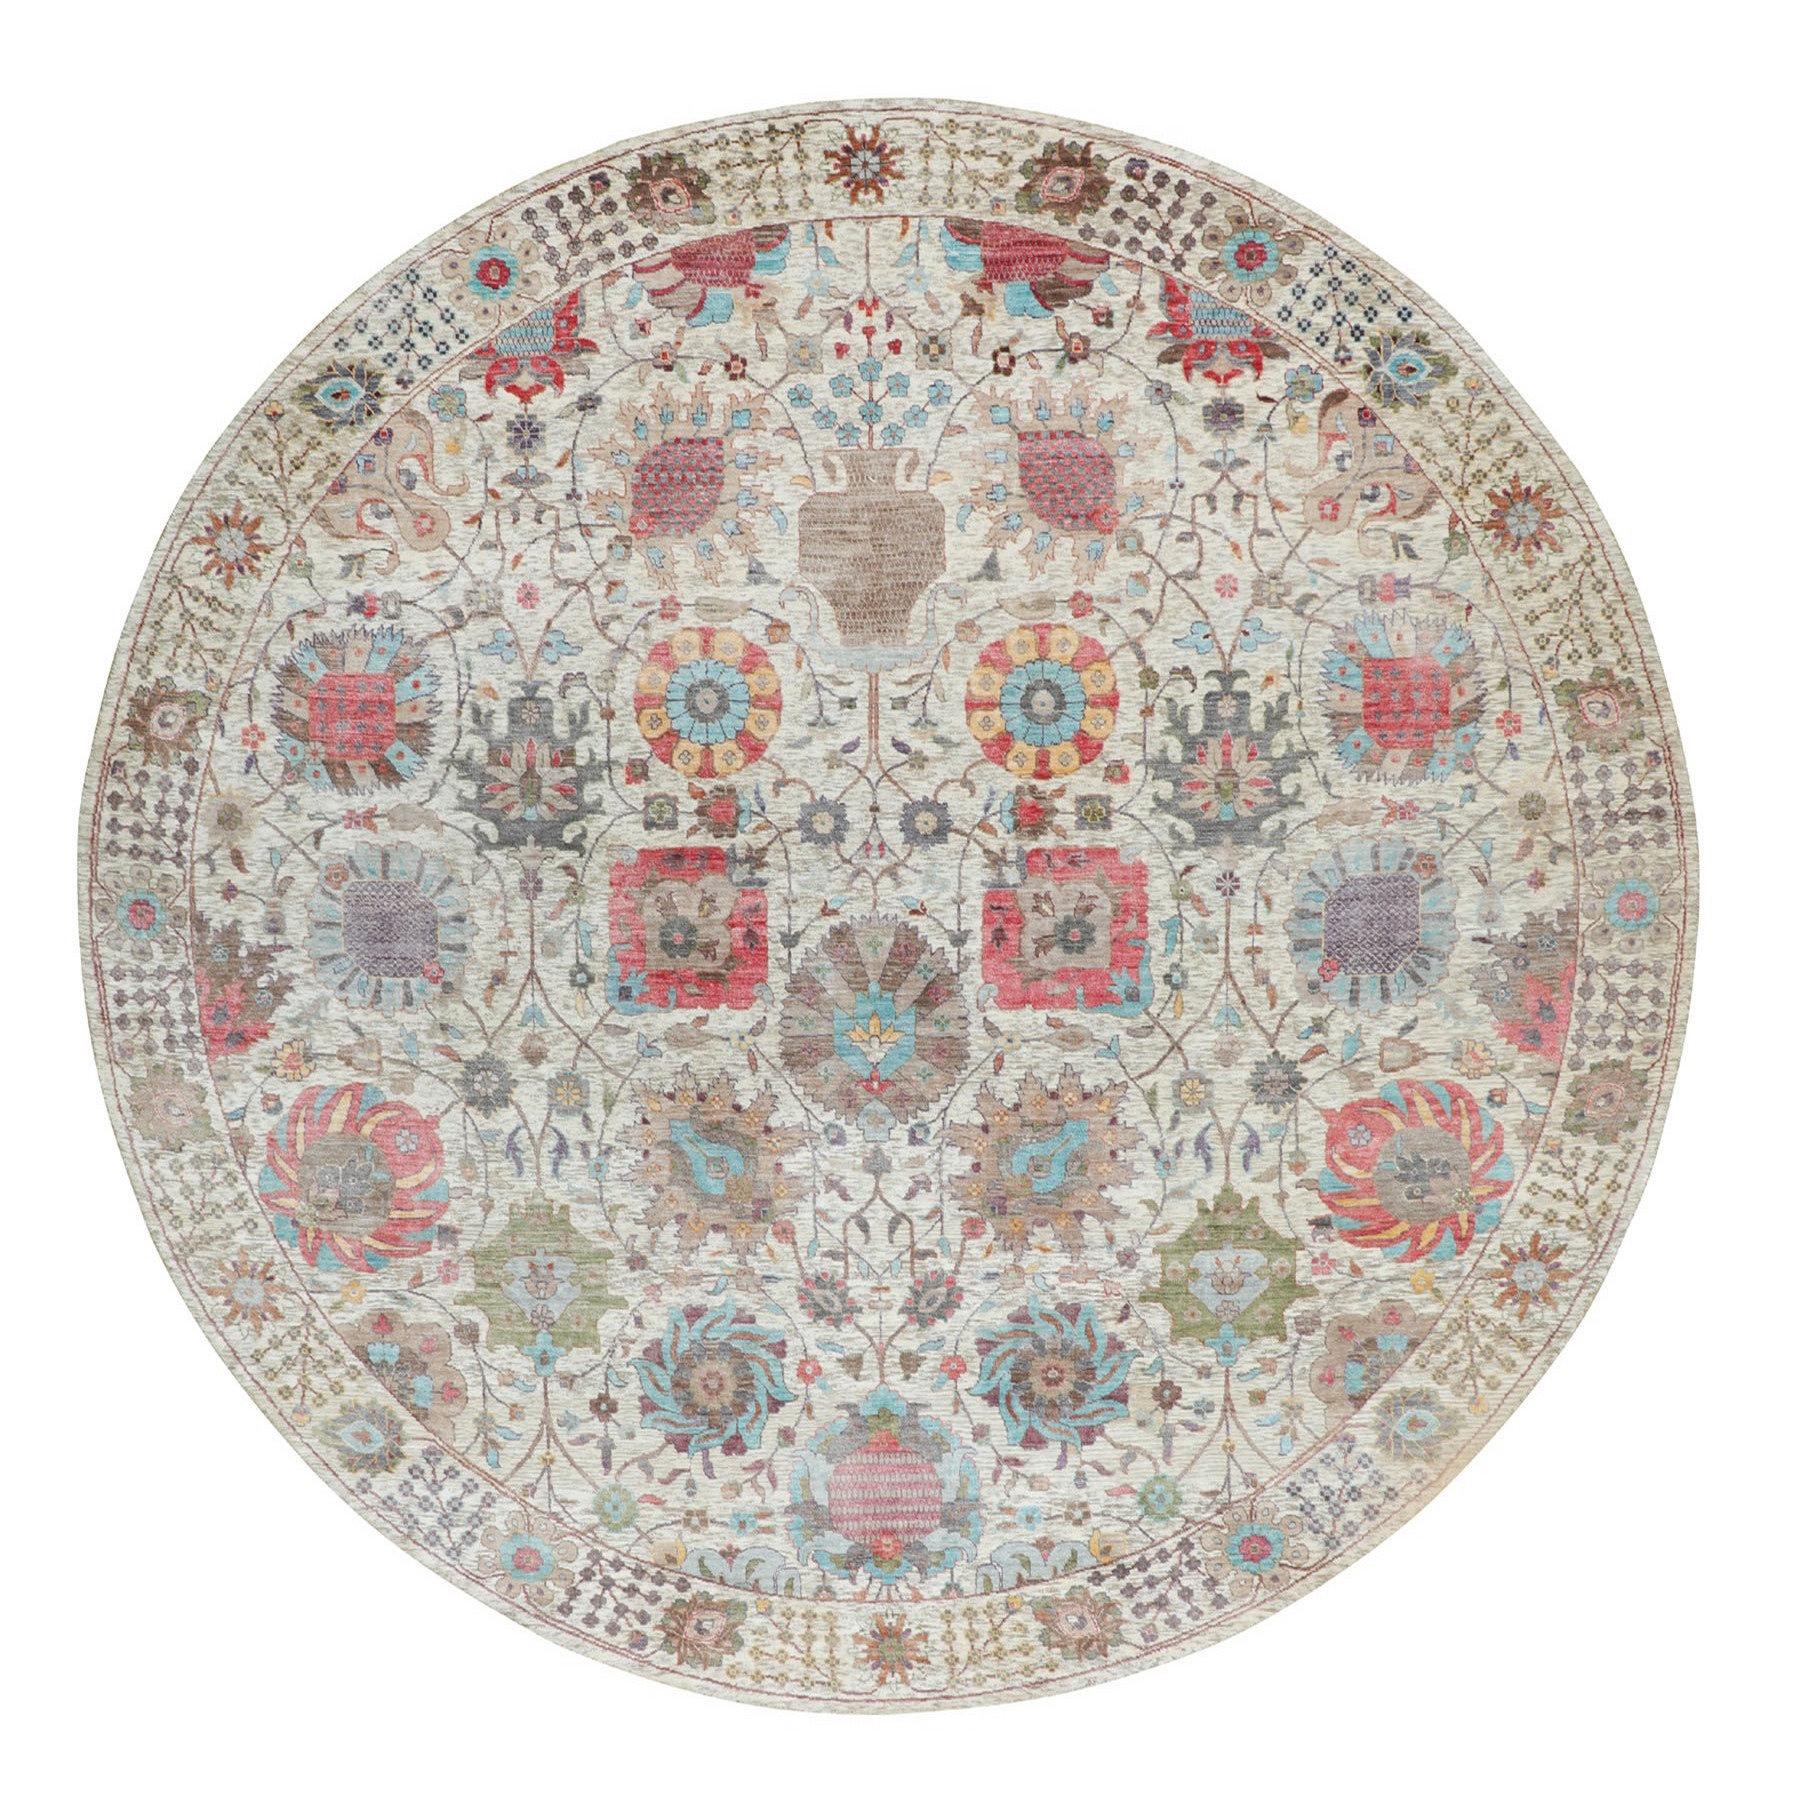 10'X10' Round Colorful Silk With Textured Wool Tabriz Hand Knotted Oriental Rug moae8a7d